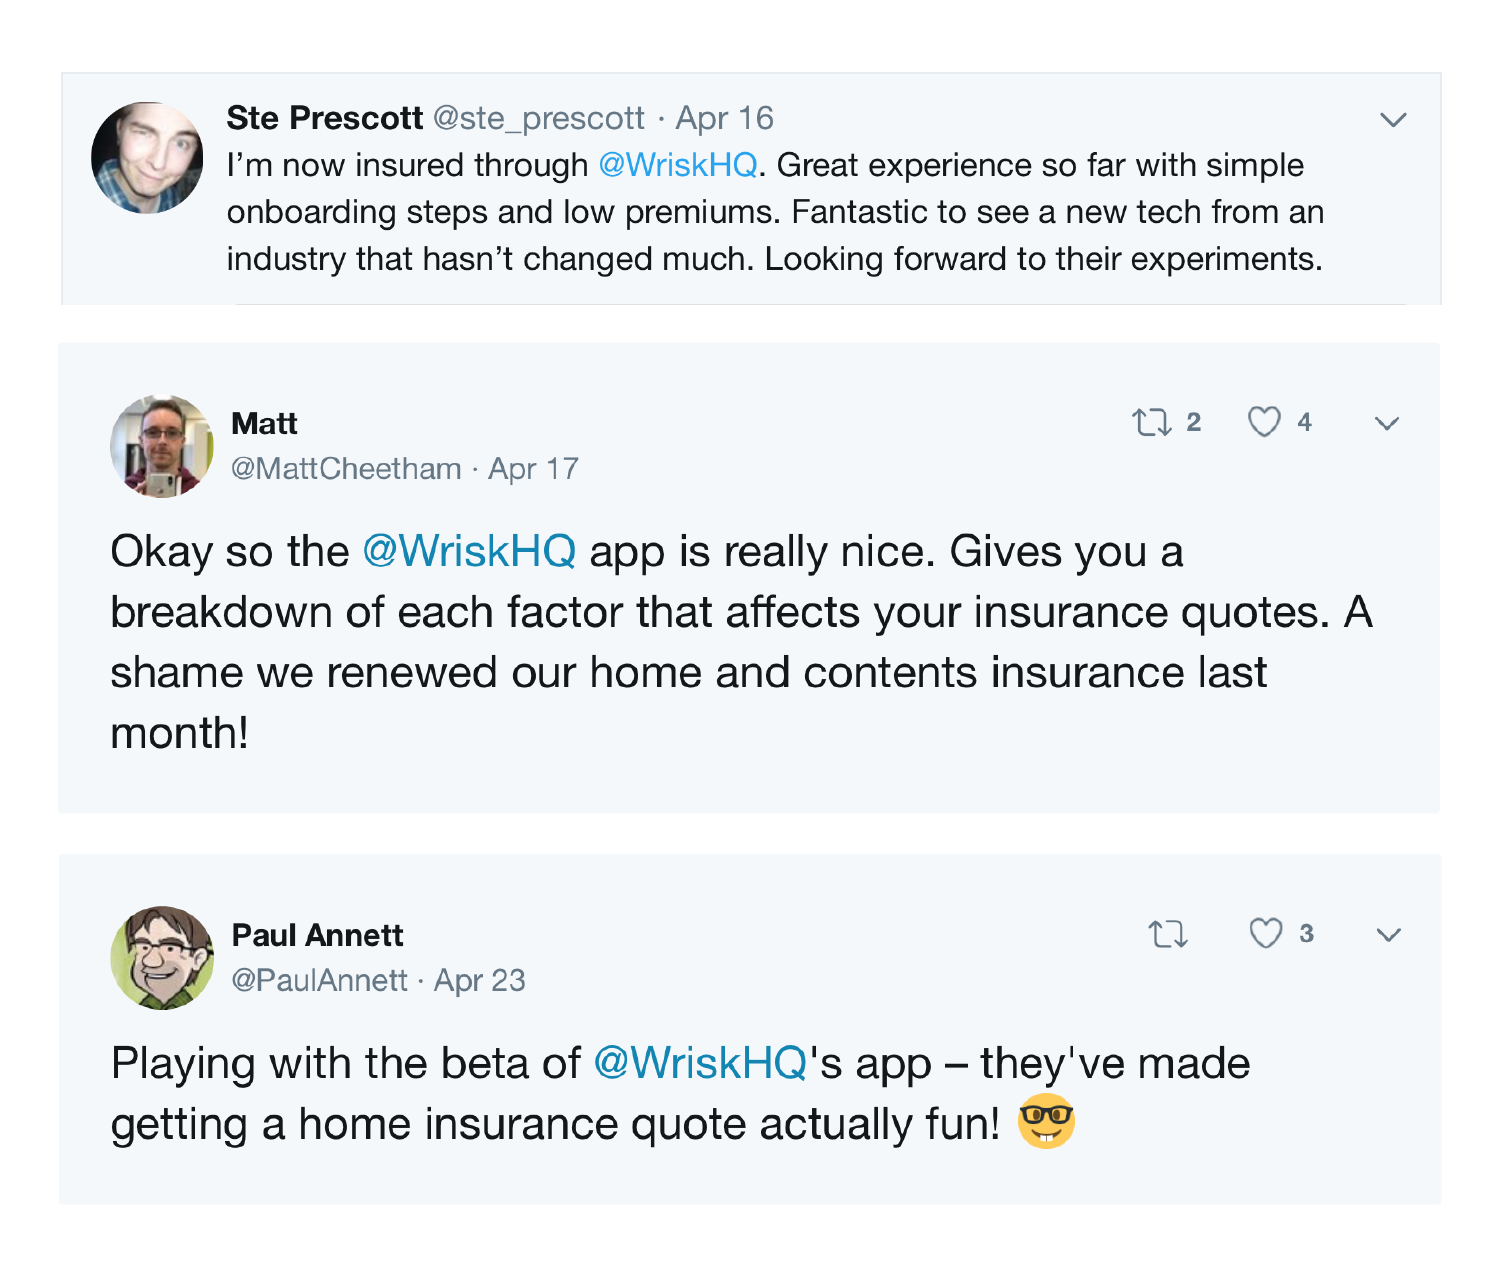 A collection of tweets from Wrisk customers about their positive experiences with the app